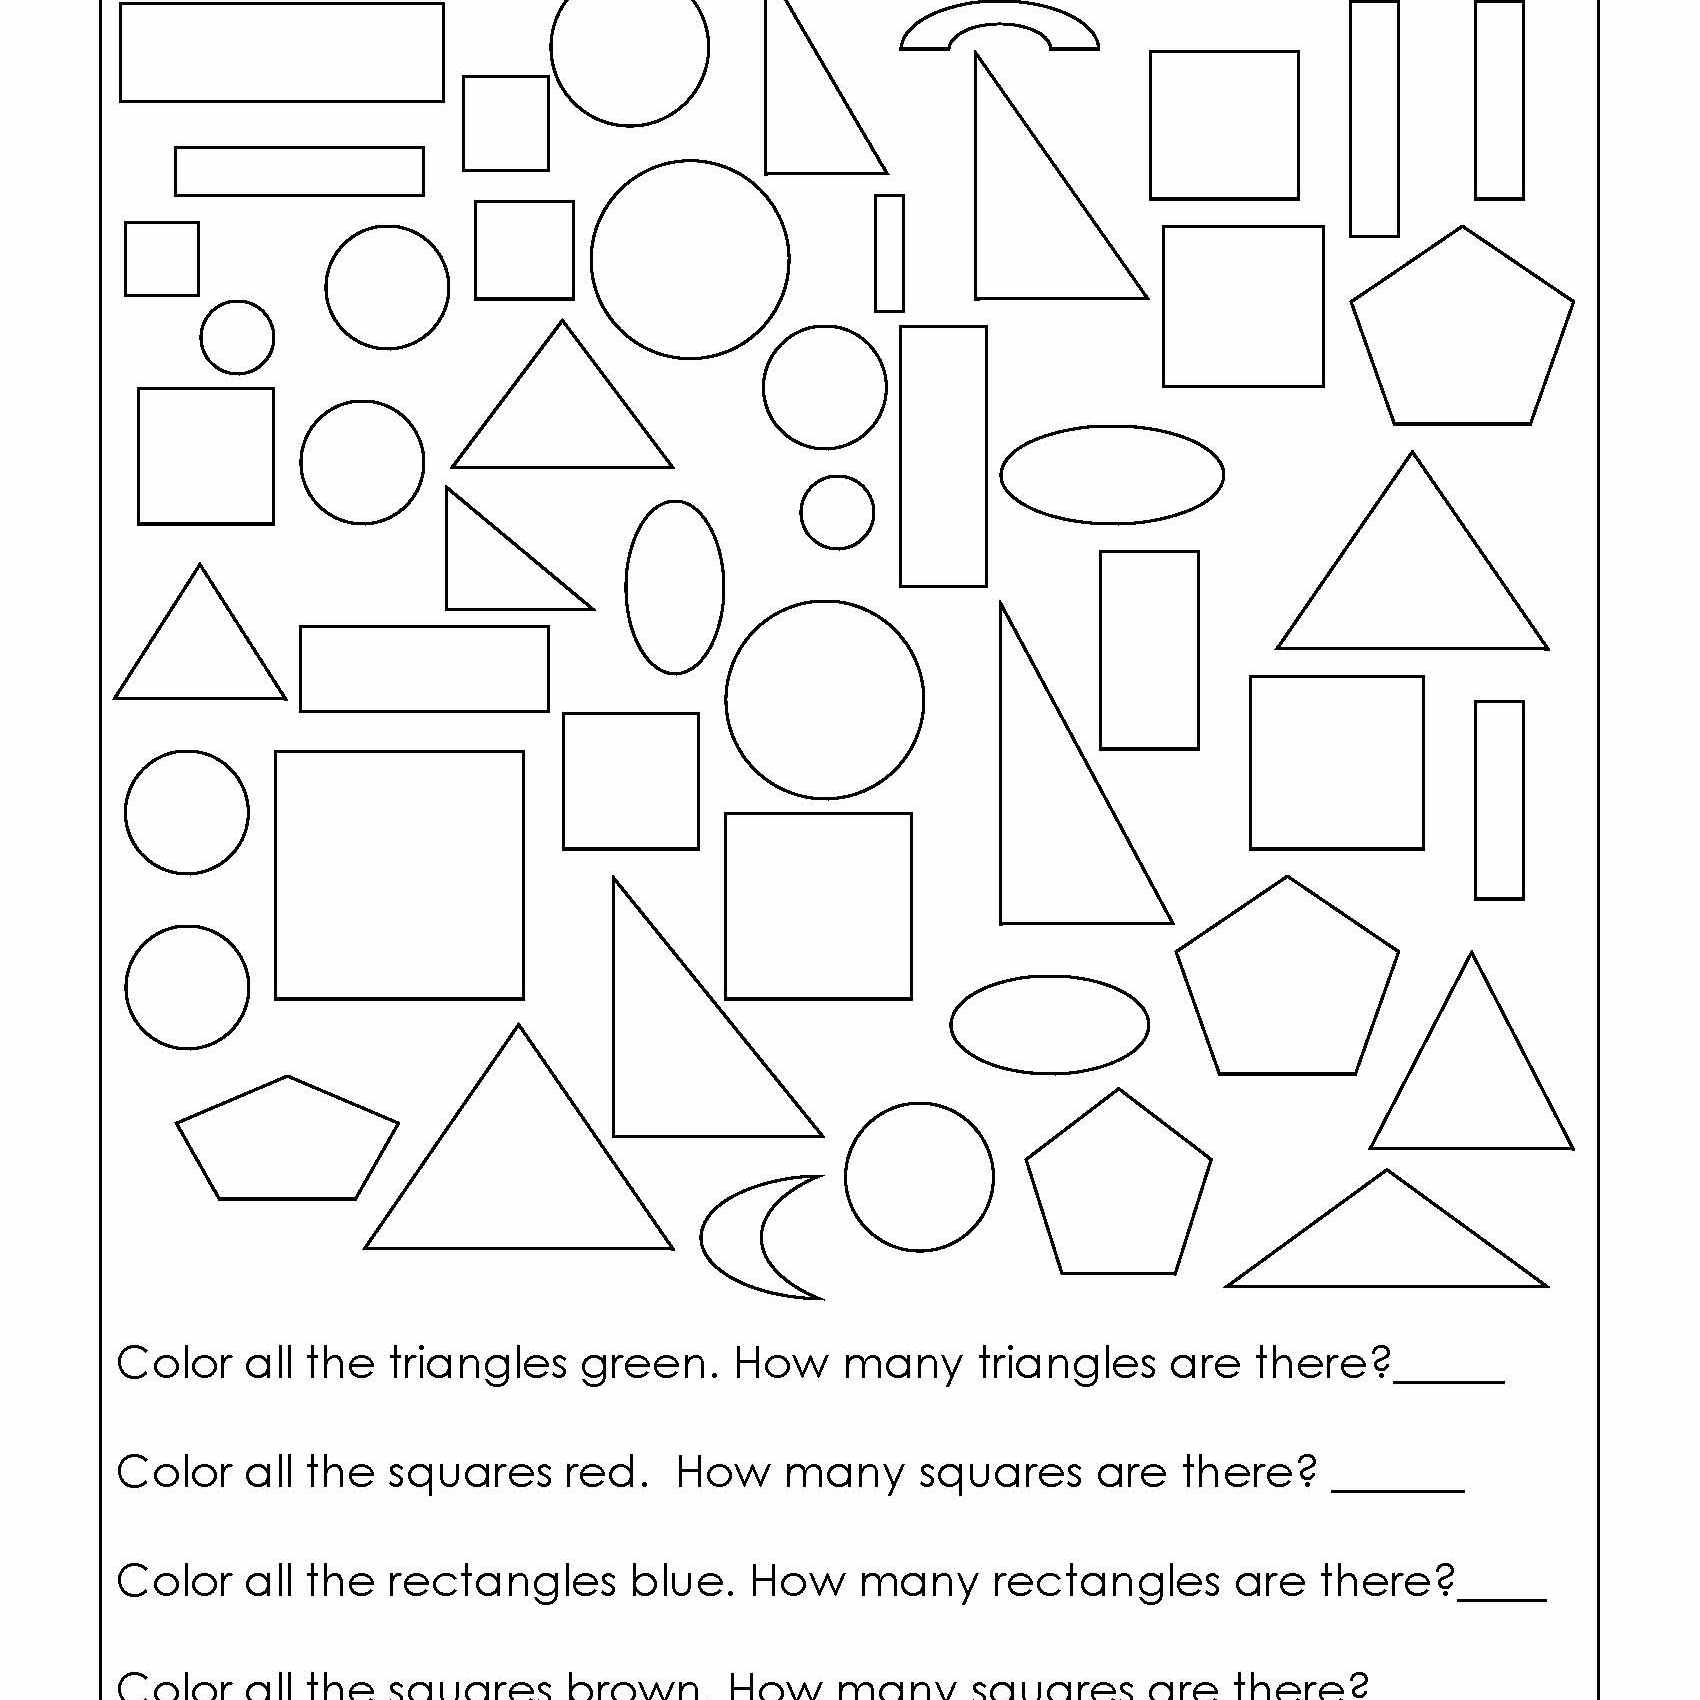 hight resolution of 2 Easy Printable Color by Addition Worksheet Geometry Worksheets for  Students in 1st Grade   Geometry worksheets